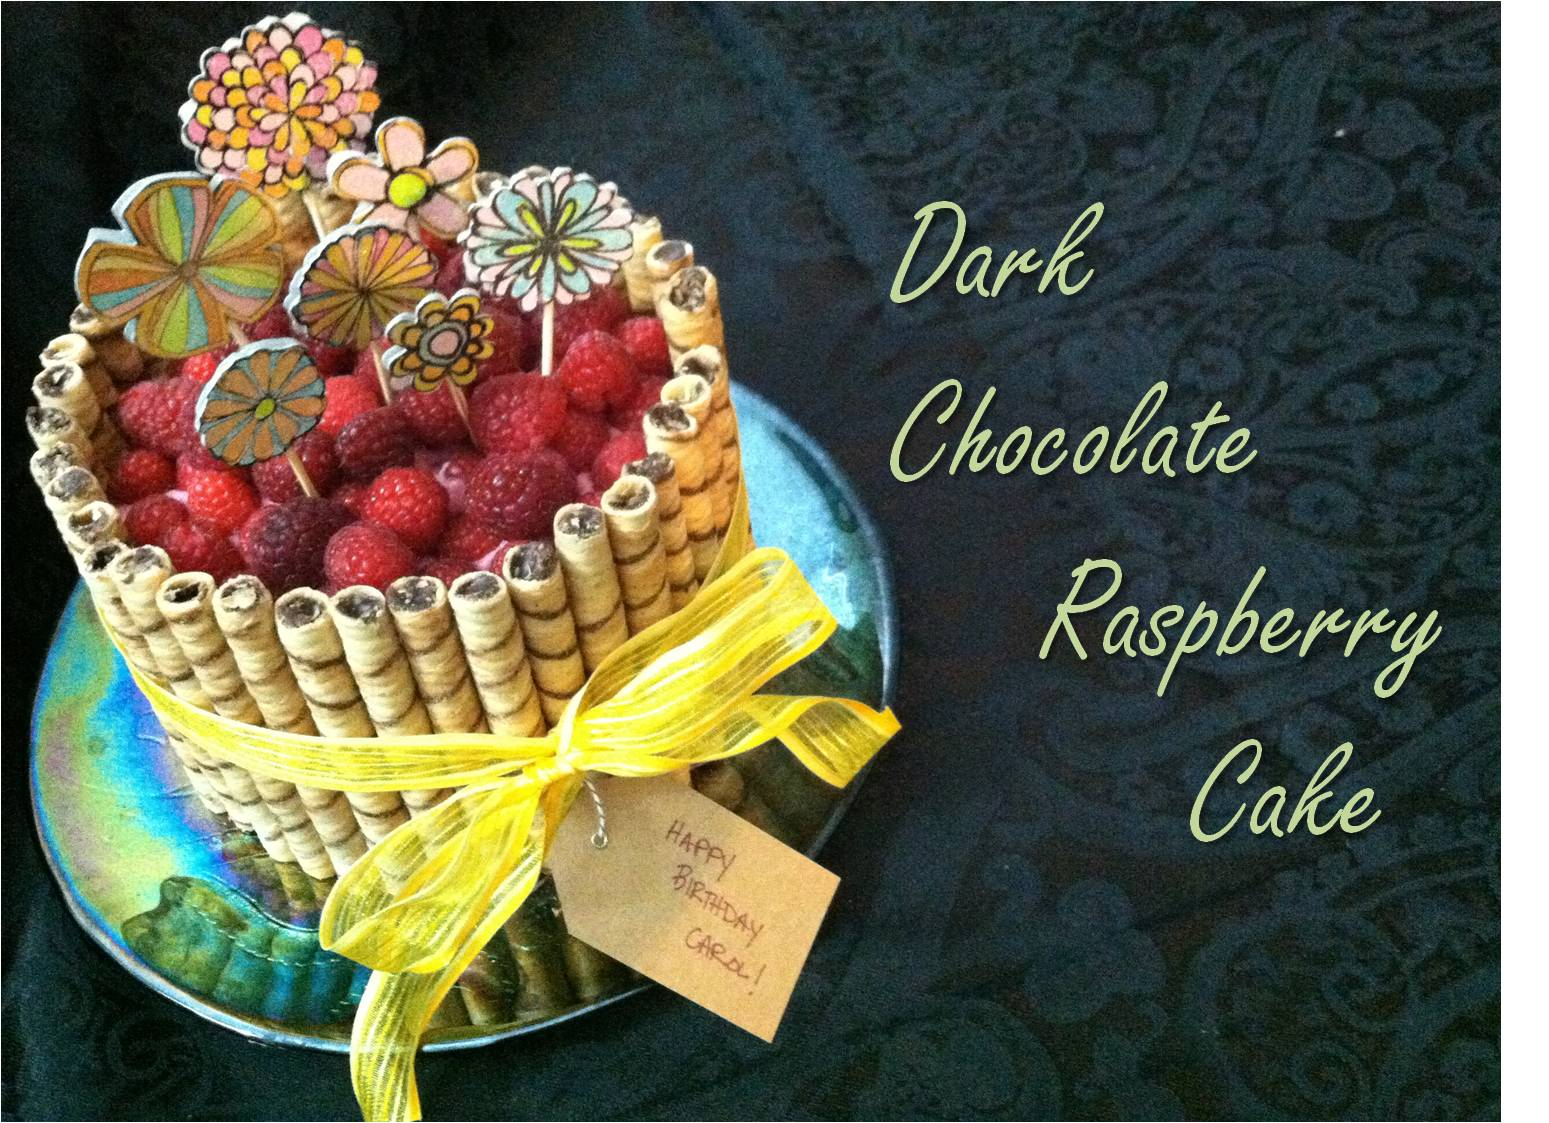 Chocolate Raspberry Cake Decoration : Julie Vision in the Kitchen: Dark Chocolate Raspberry Cake ...